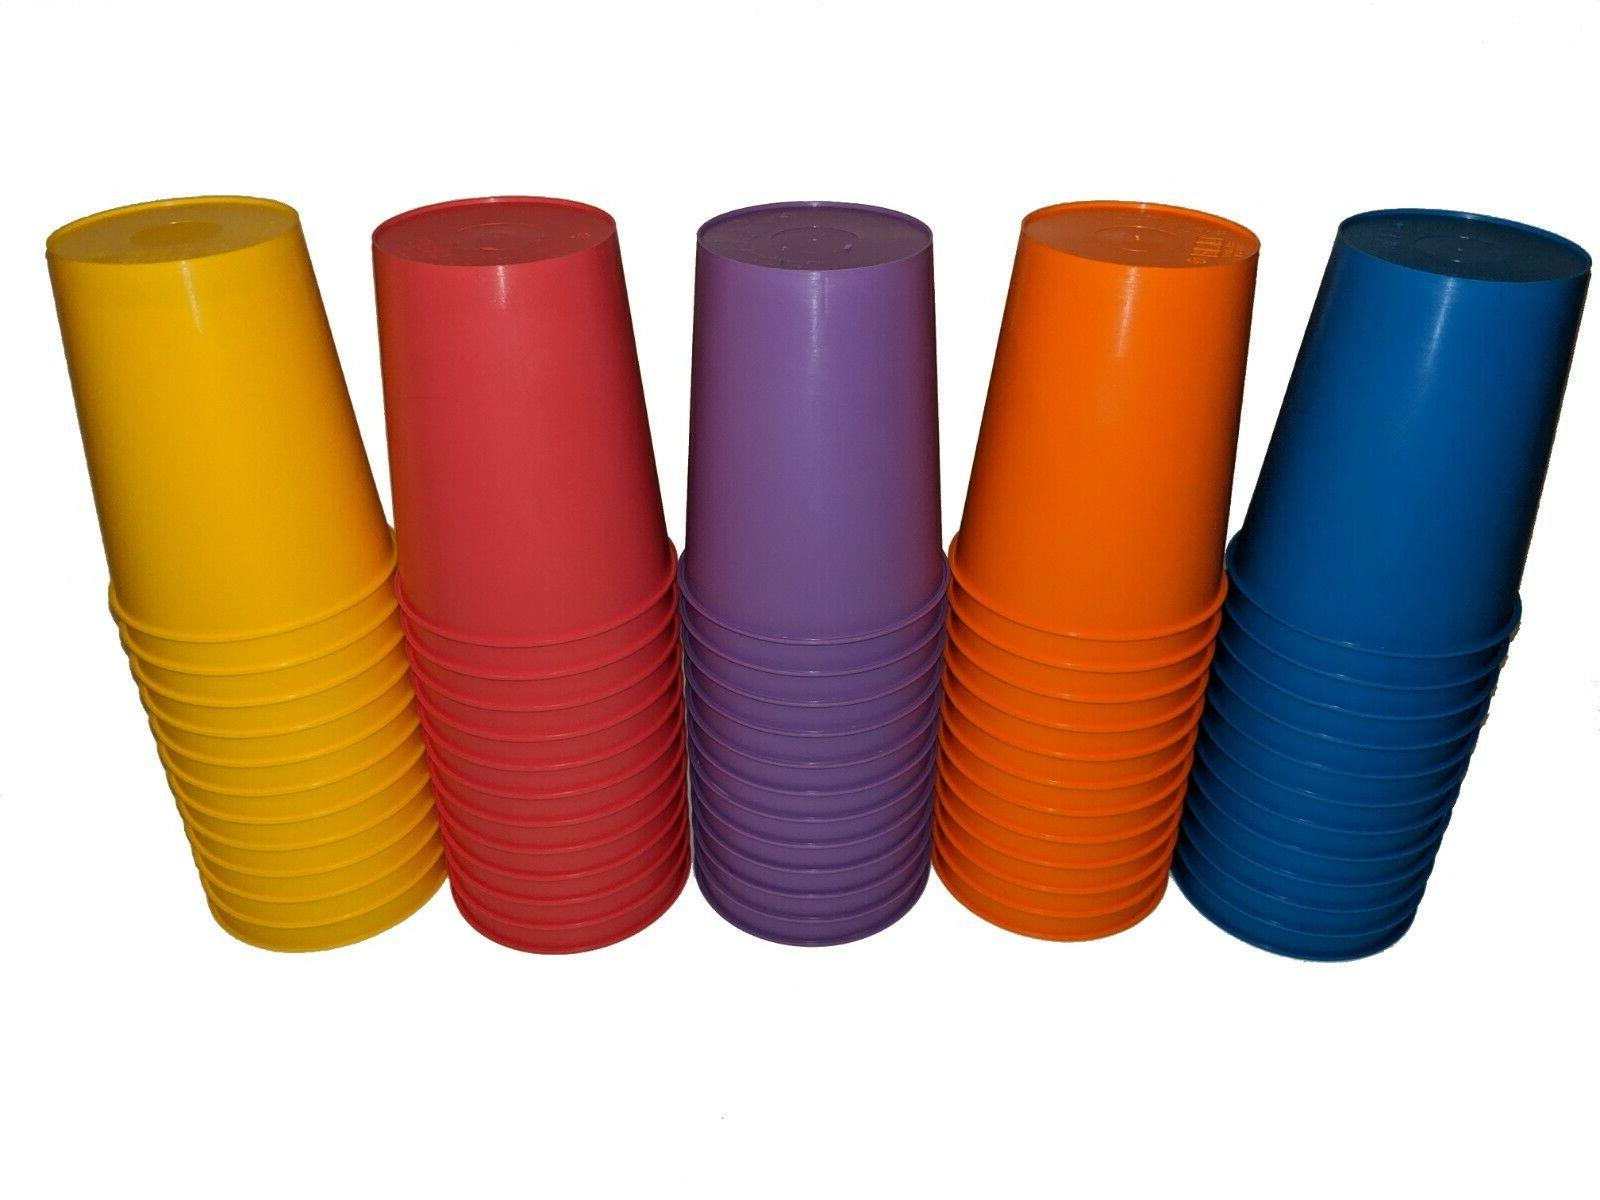 16oz Plastic Cups, 12 Pack Unbreakable Cups for Parties, or